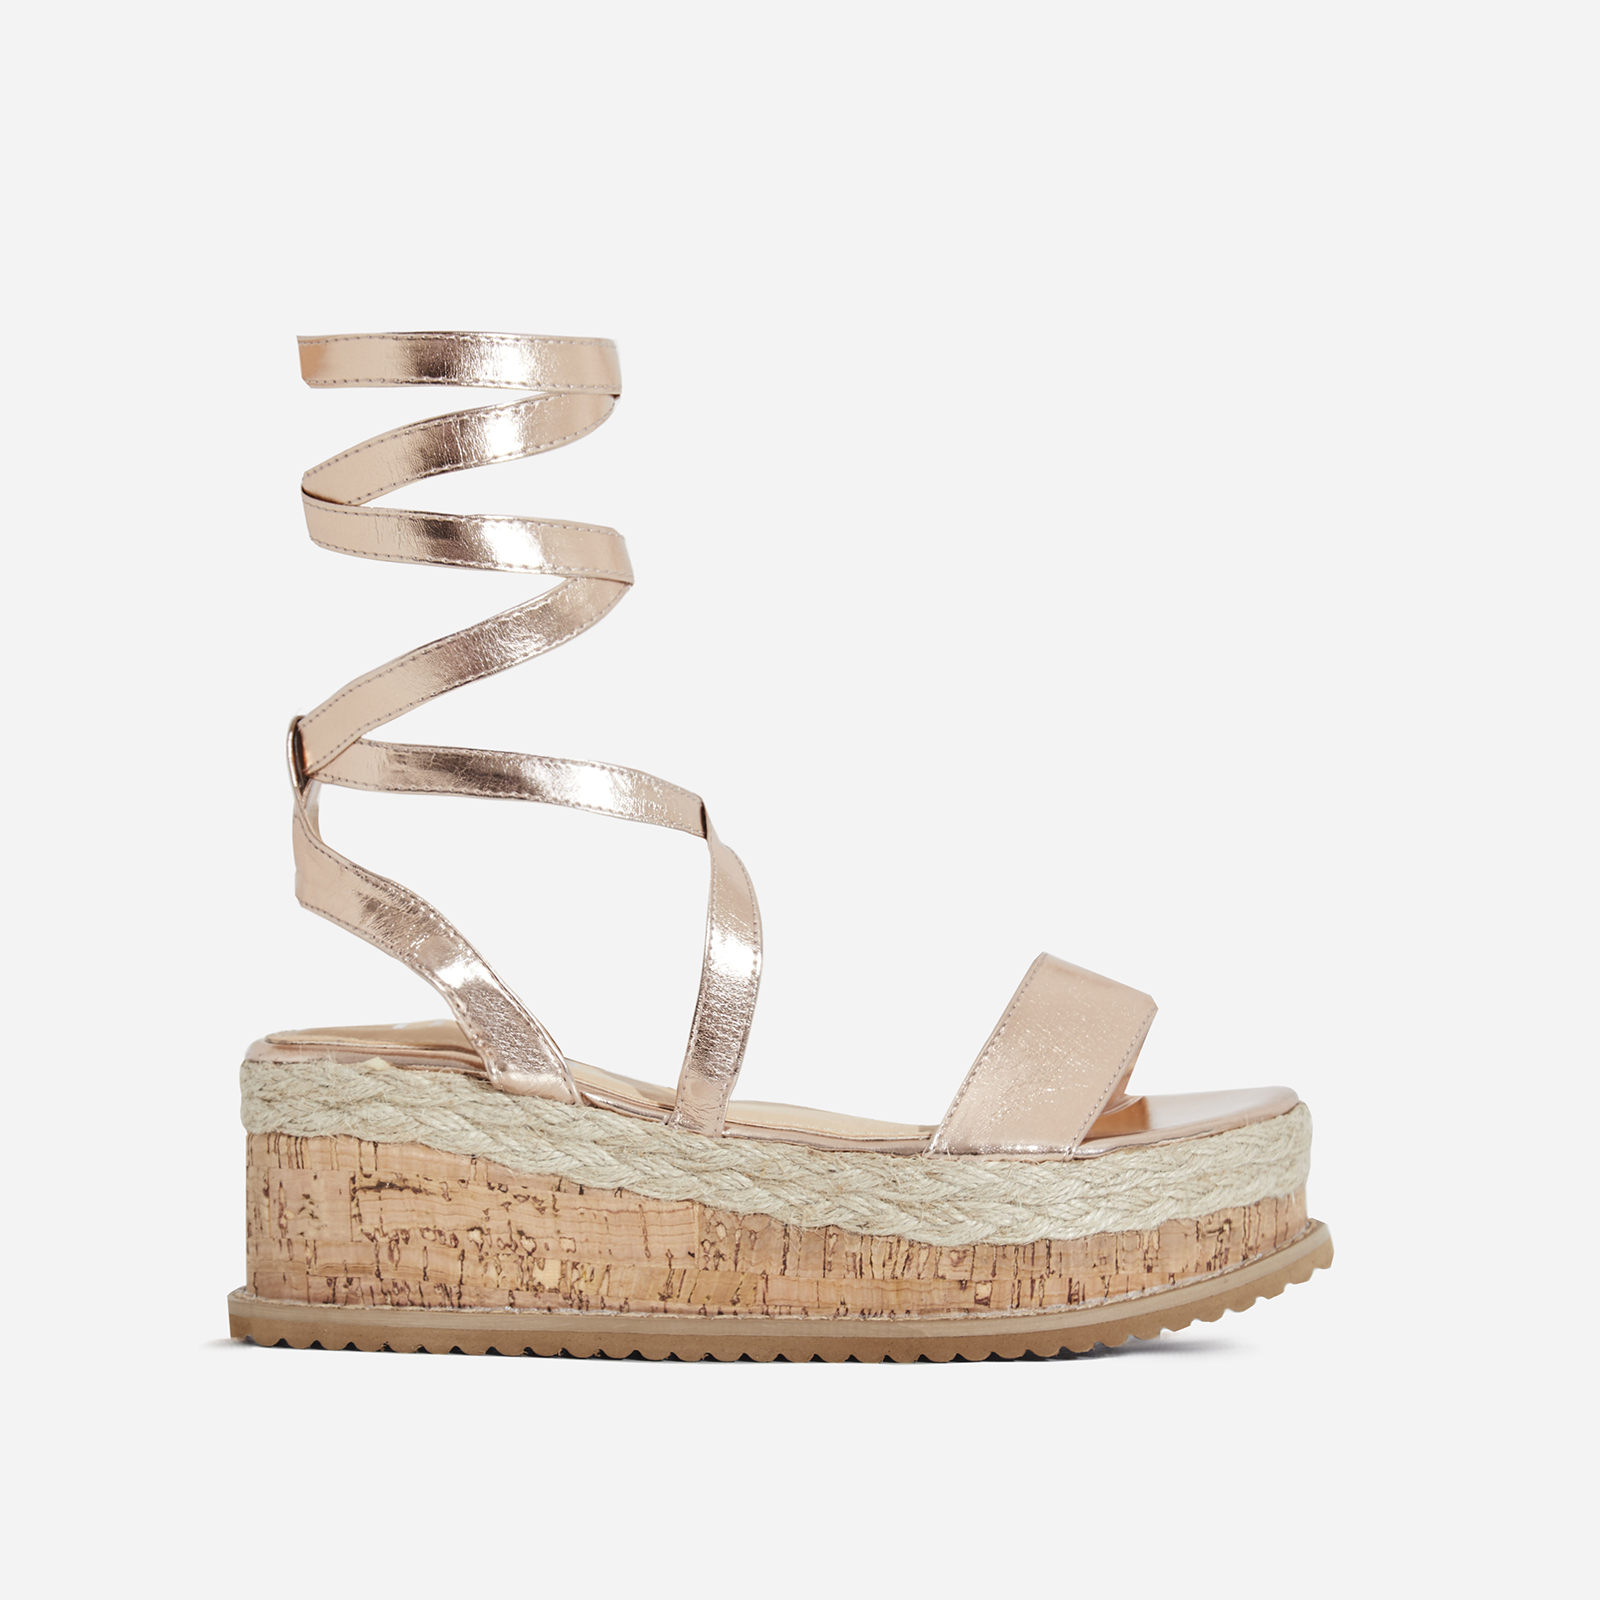 Abigail Strappy Espadrille Flatform In Rose Gold Faux Leather Image 1